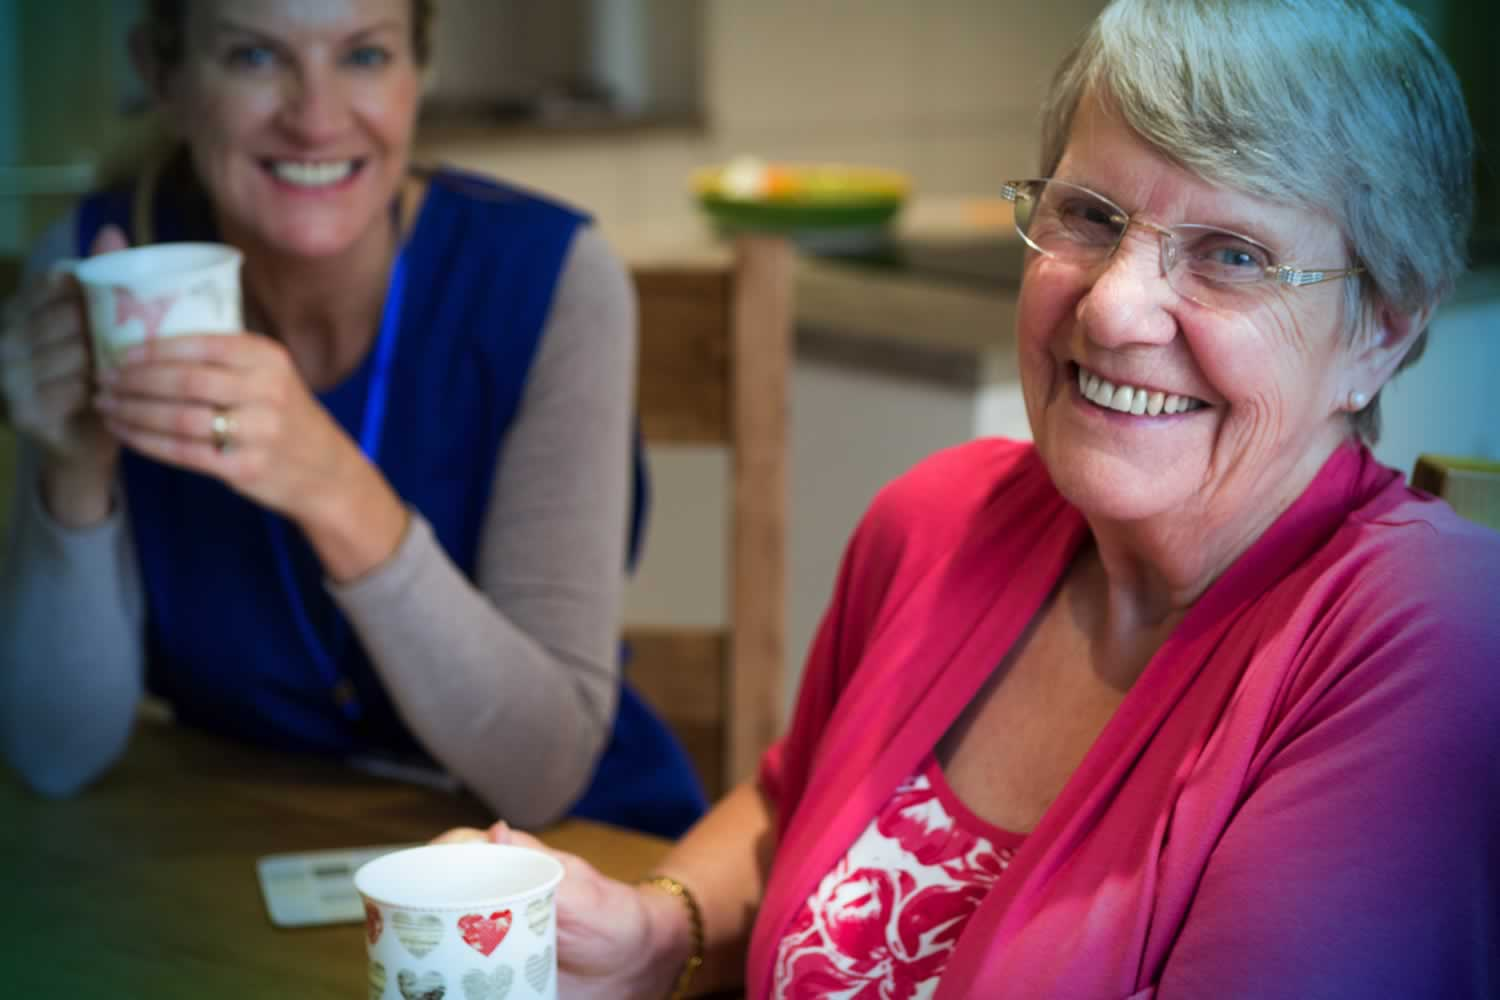 older woman and younger woman sitting together with coffee cups in their hand, smiling